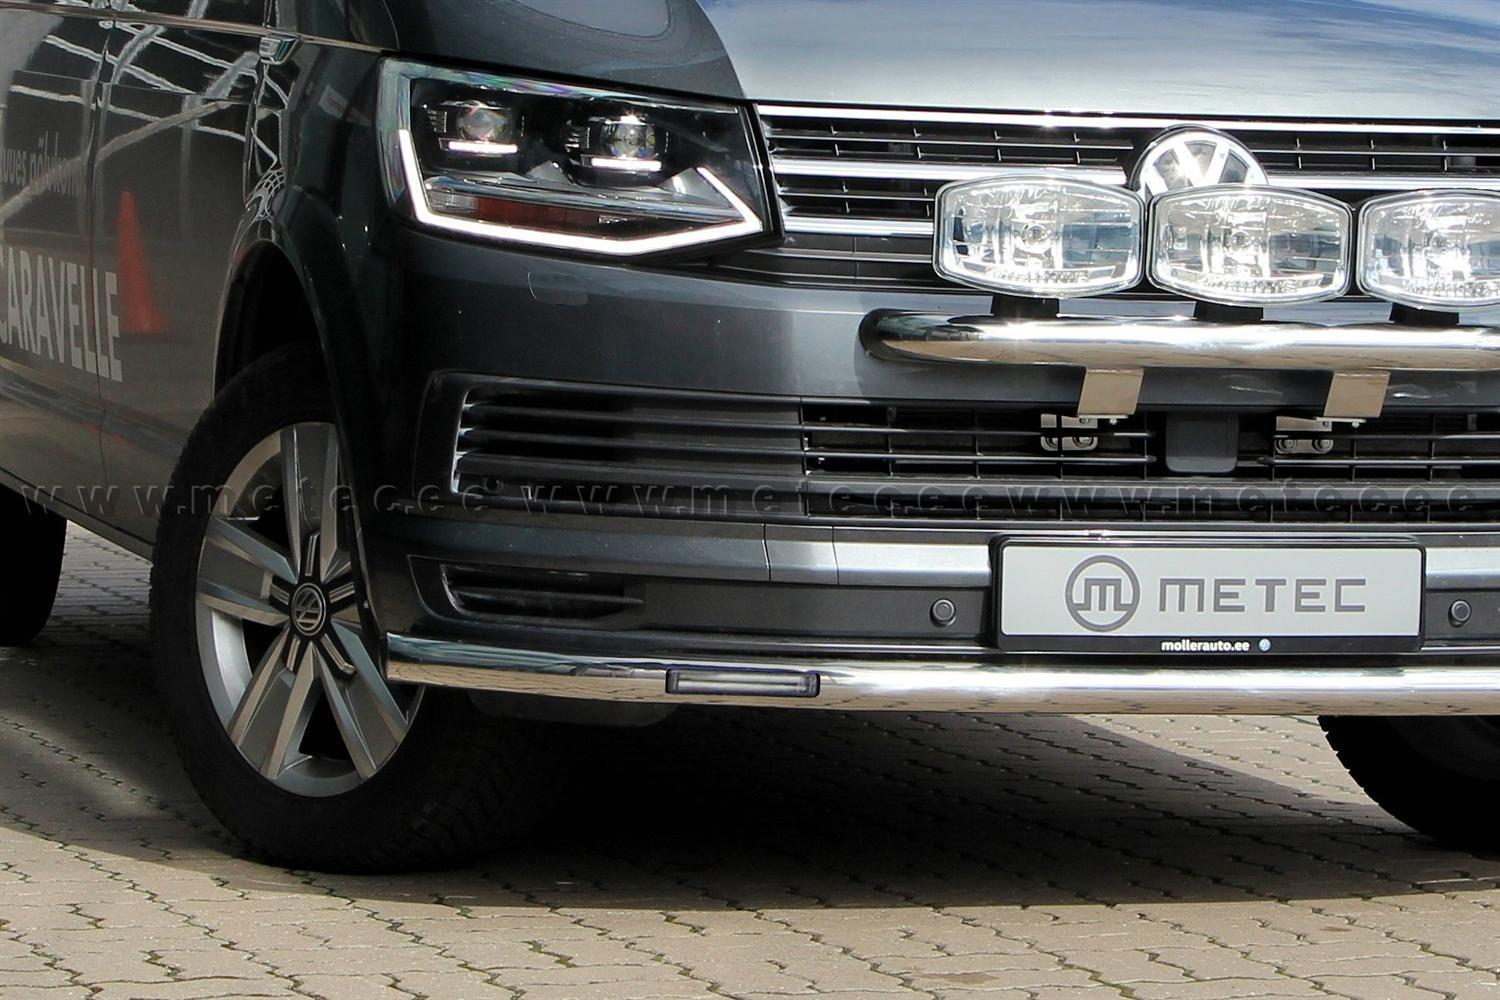 Vw Transporter T6 Small Light Bar Km Parts Tuningparts